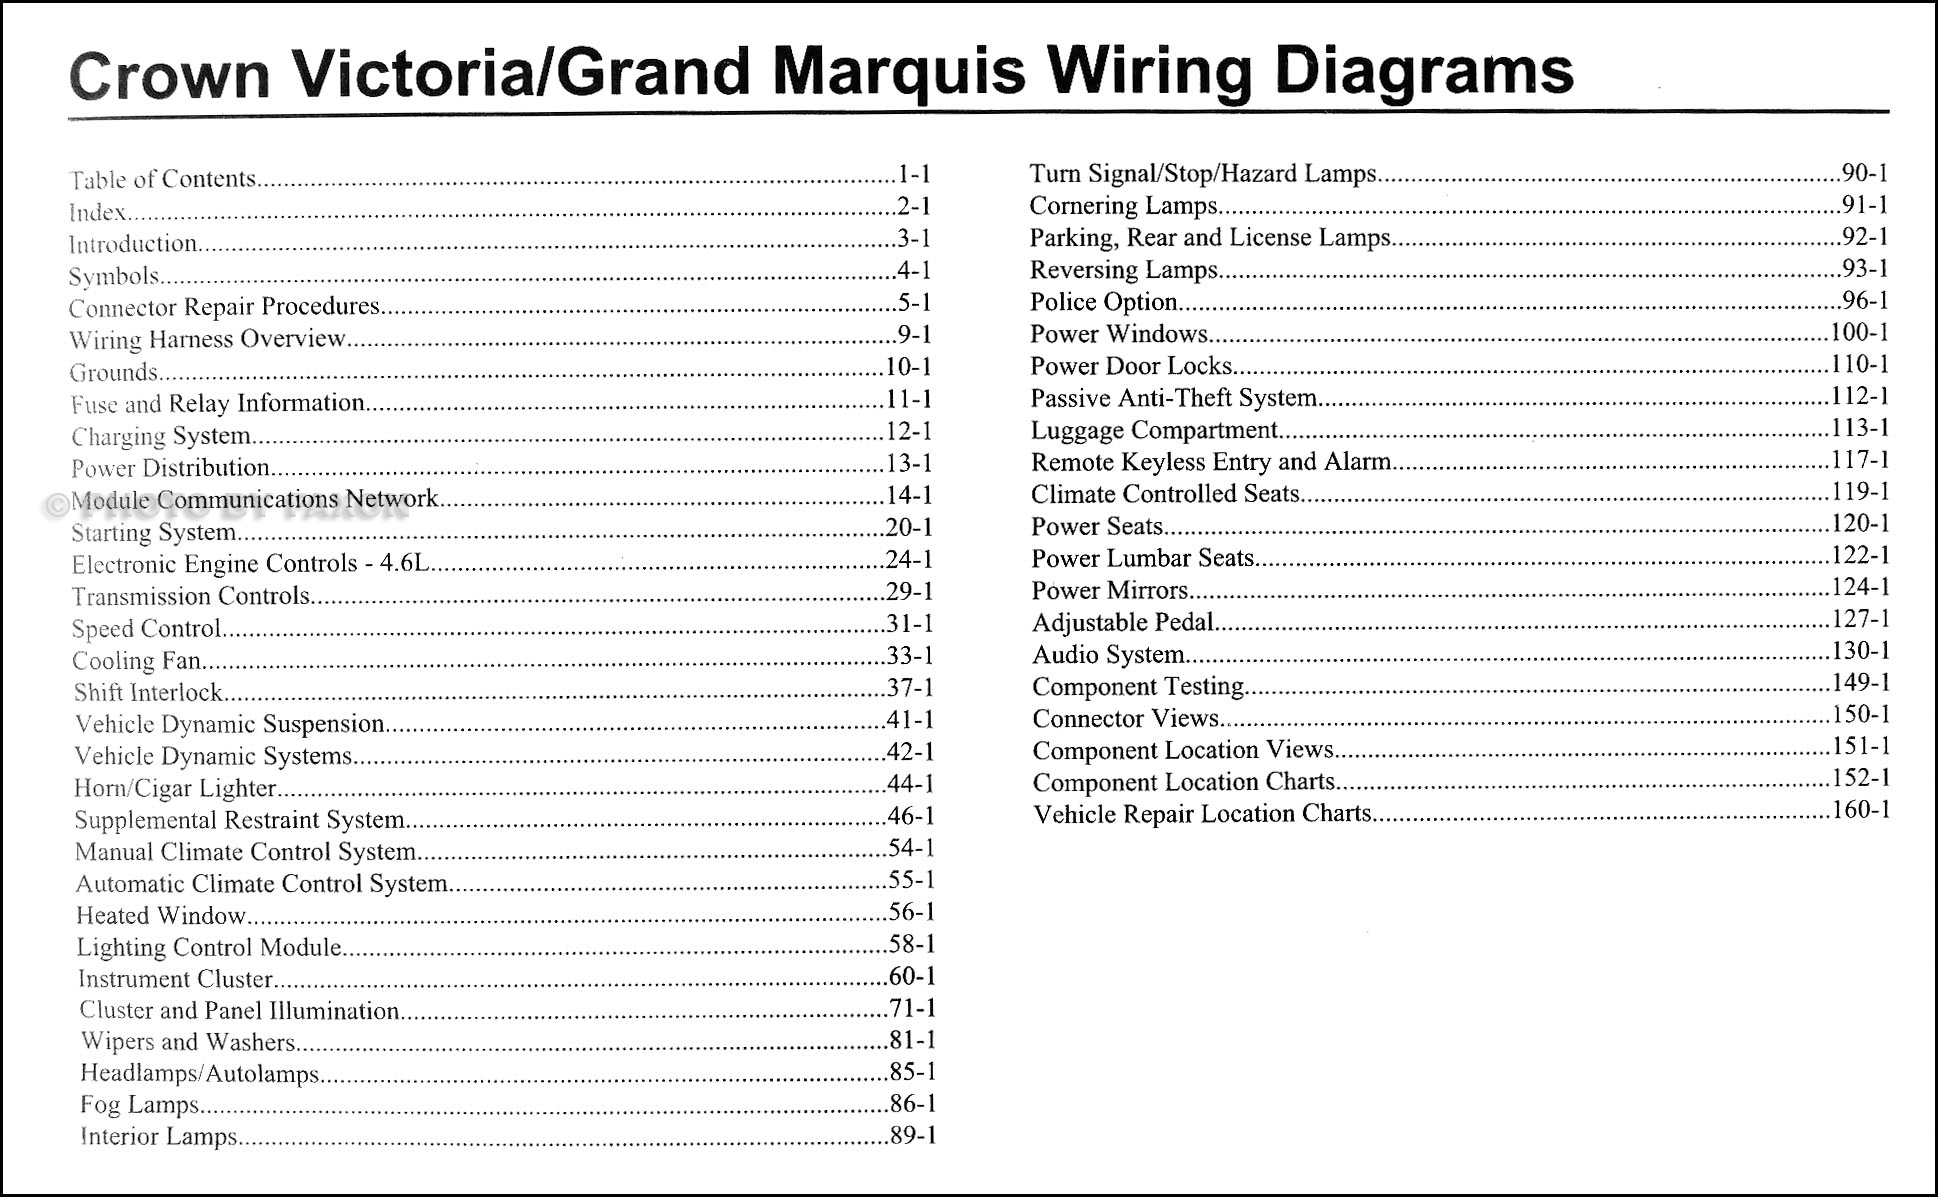 2009FordCrownVictoriaOWD TOC 2009 crown victoria & grand marquis original wiring diagram manual mercury grand marquis radio wiring diagram at soozxer.org